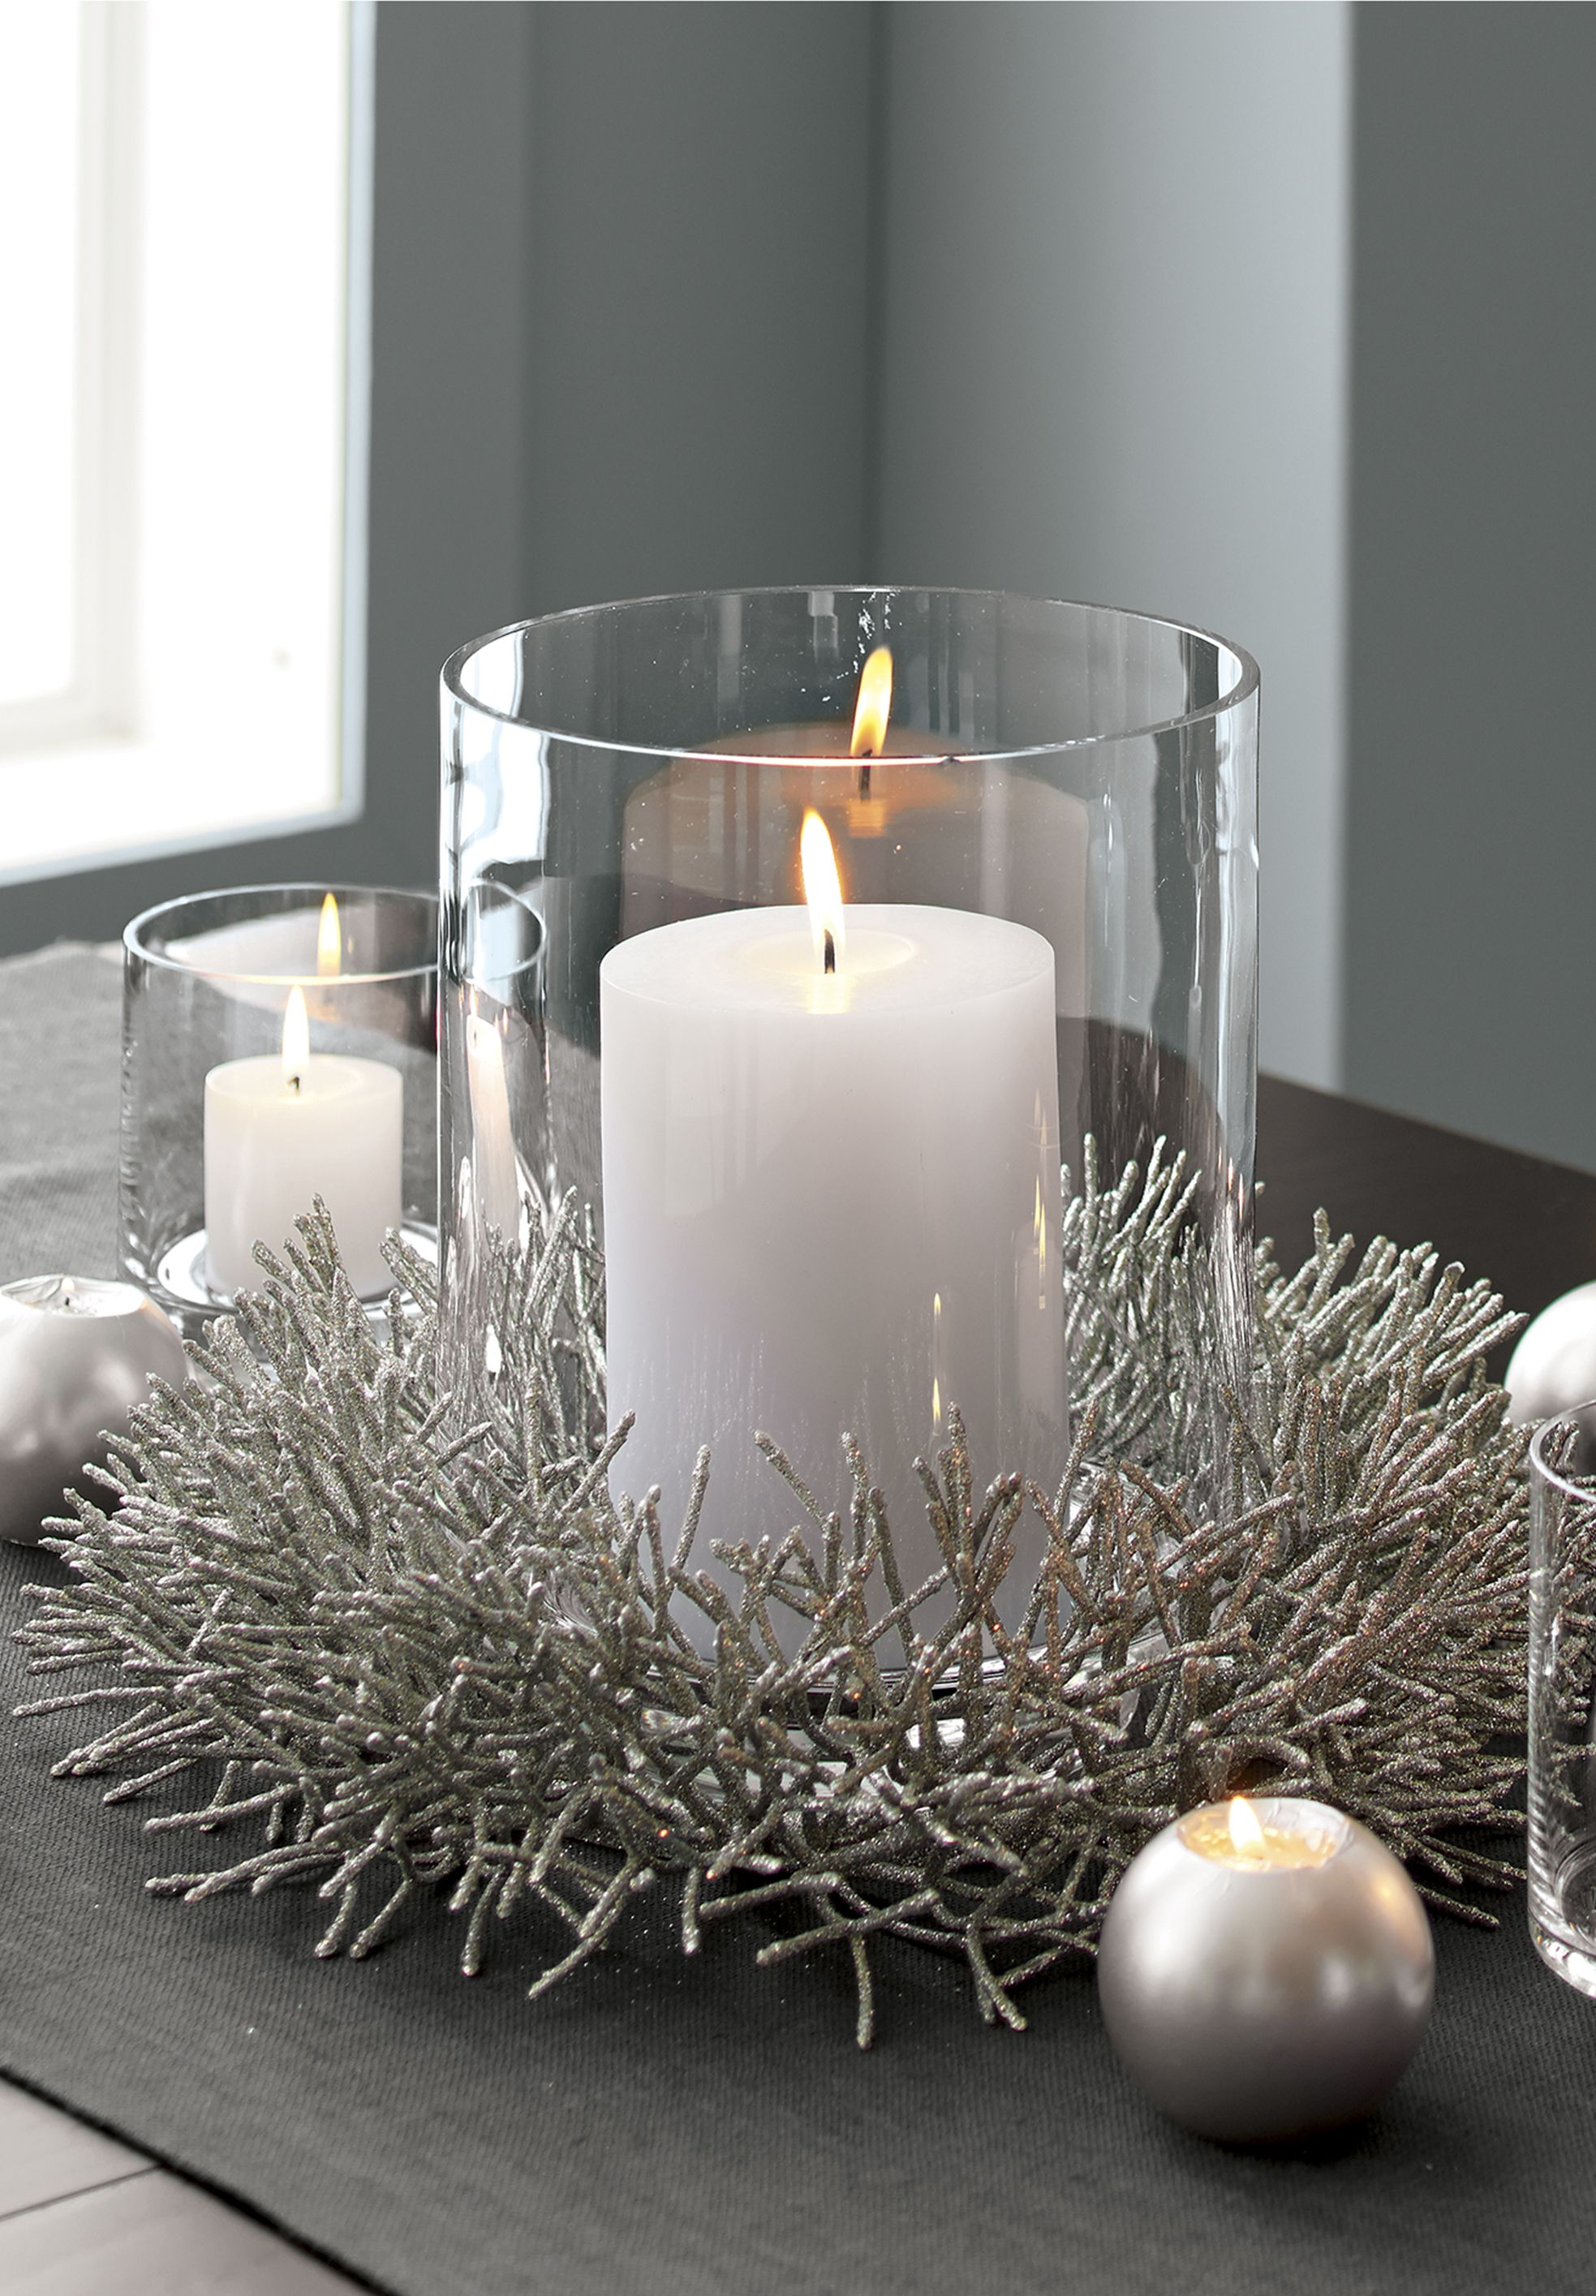 Taylor Large Glass Hurricane Candle Holder Reviews Crate And Barrel In 2021 Christmas Candle Decorations Christmas Centerpieces Christmas Table Decorations